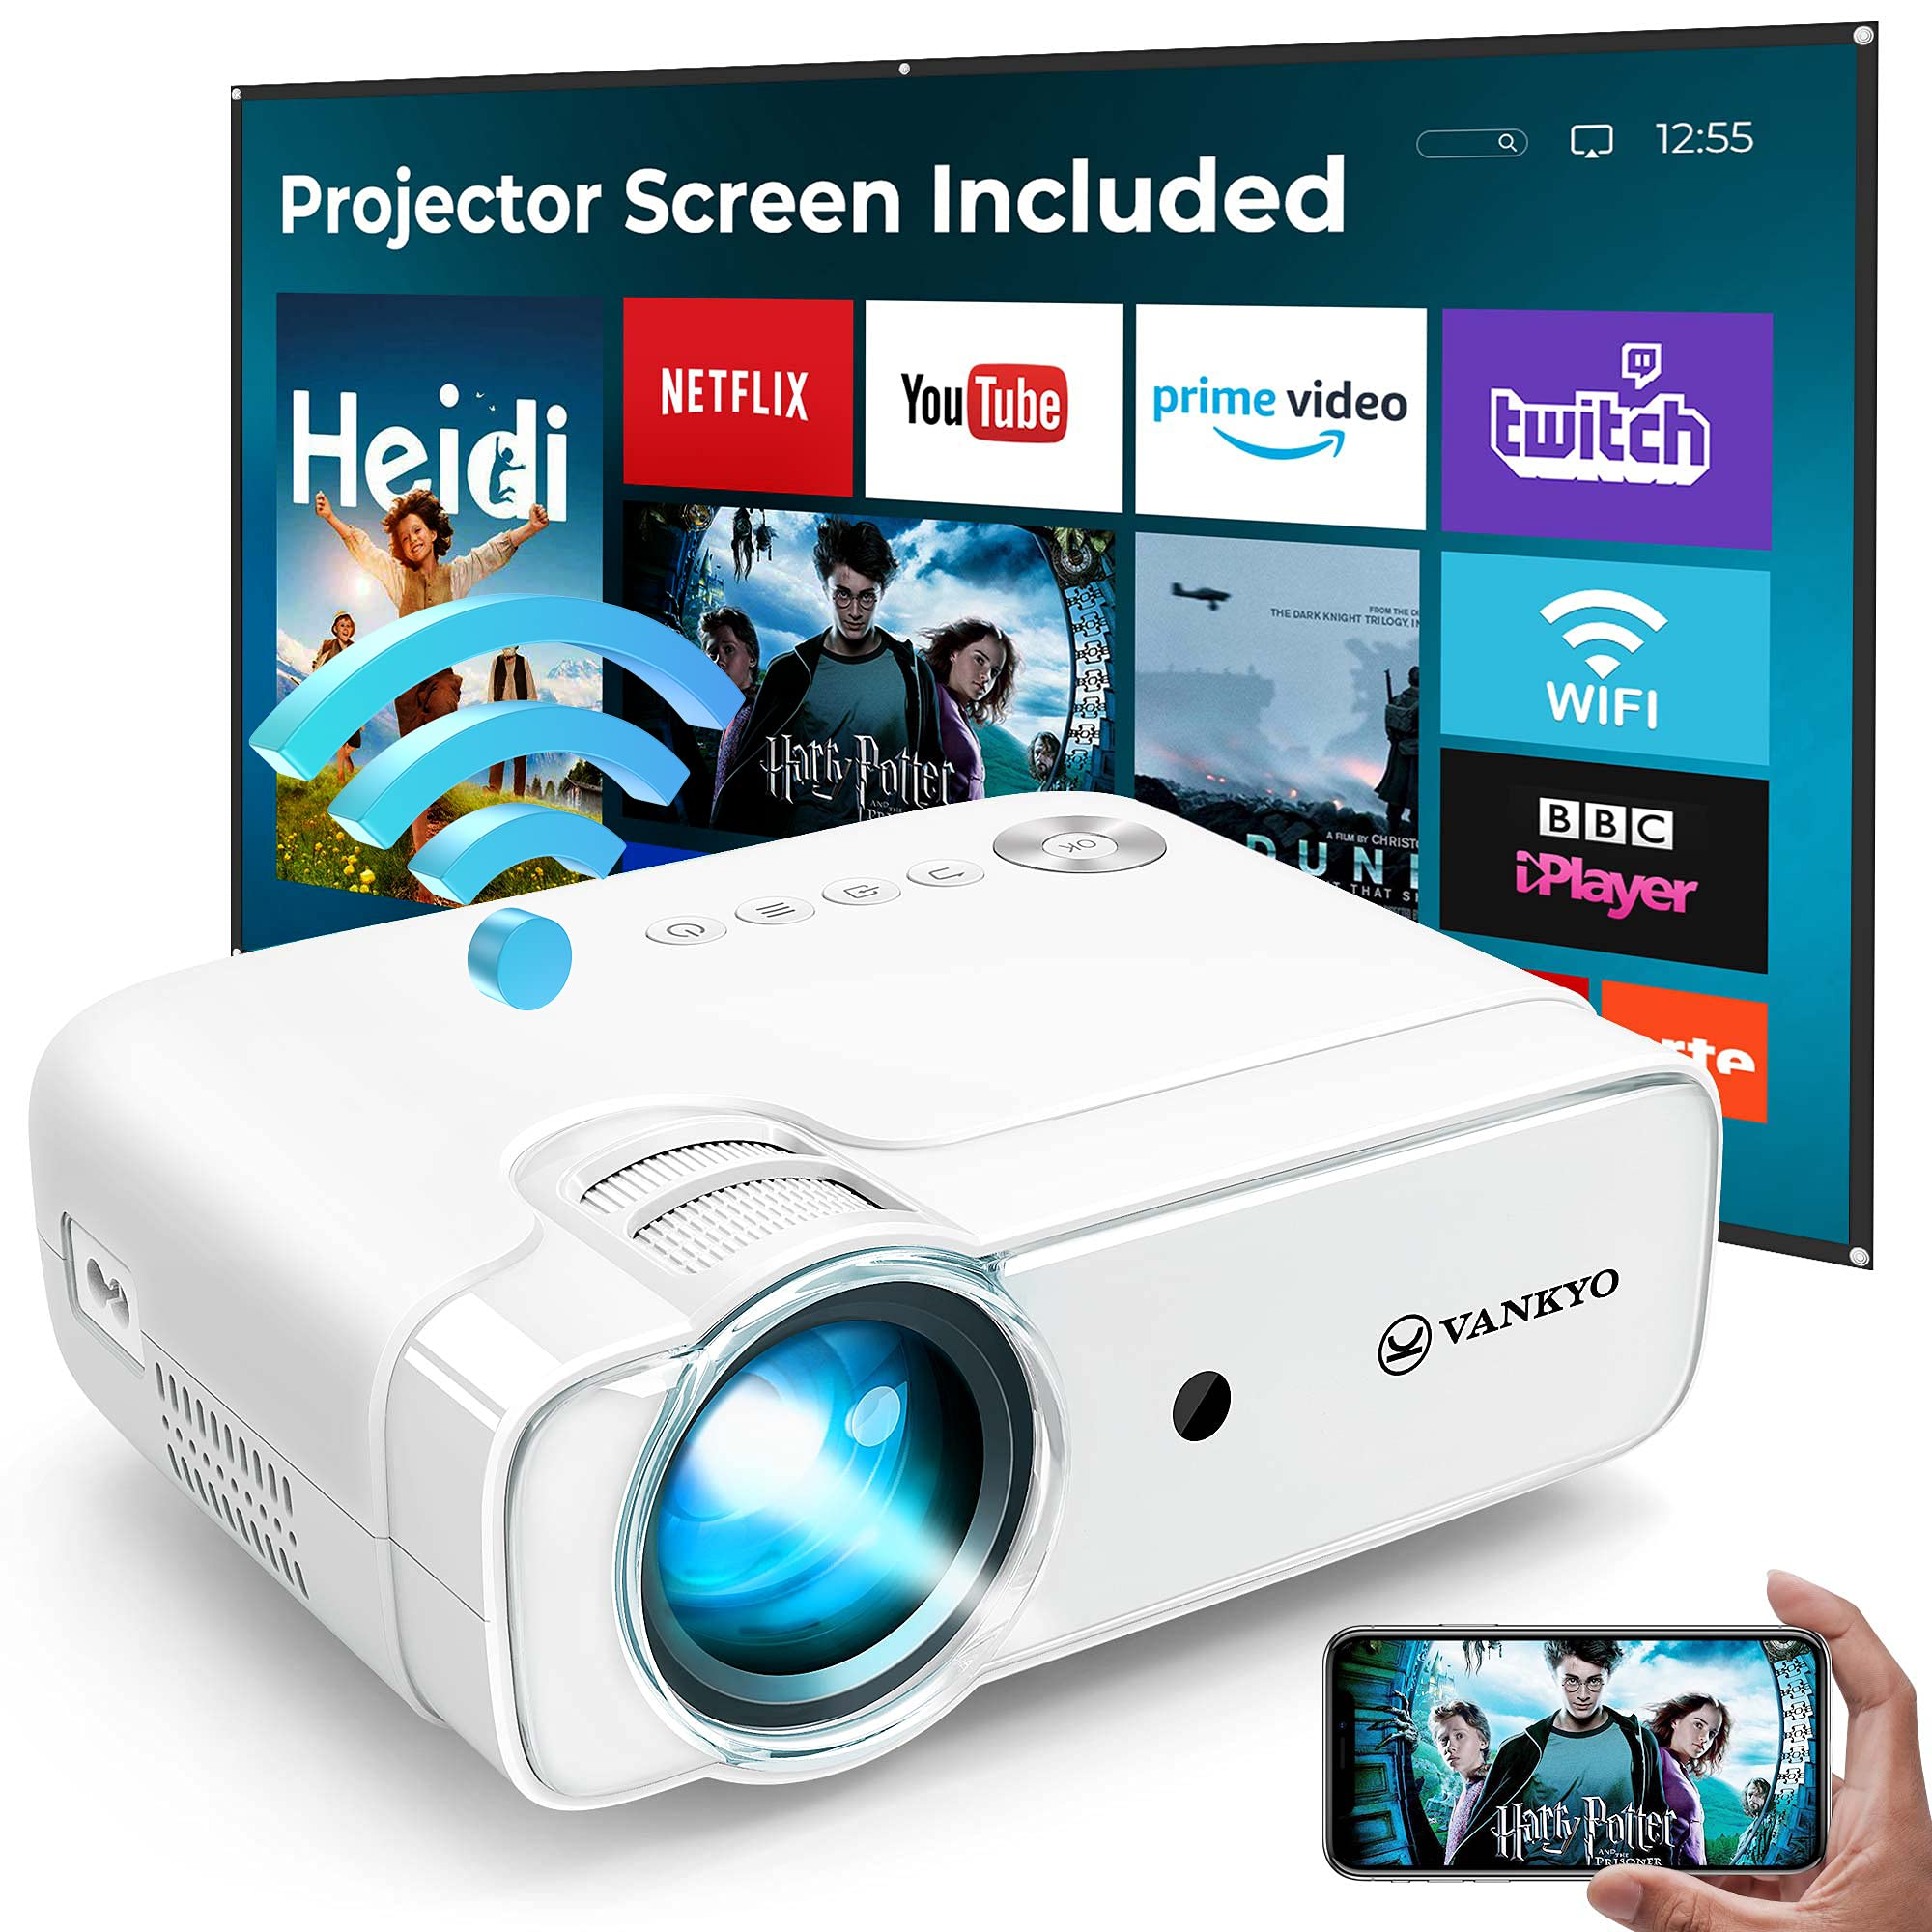 """VANKYO L430W WiFi Mini Projector w/ 100 Inch Projector Screen, 6500 Lumens Portable Movie Projector Supports Full HD 1080P & 236"""" Display Compatible with TV Stick, HDMI, USB, PS5, iPhone, Android"""